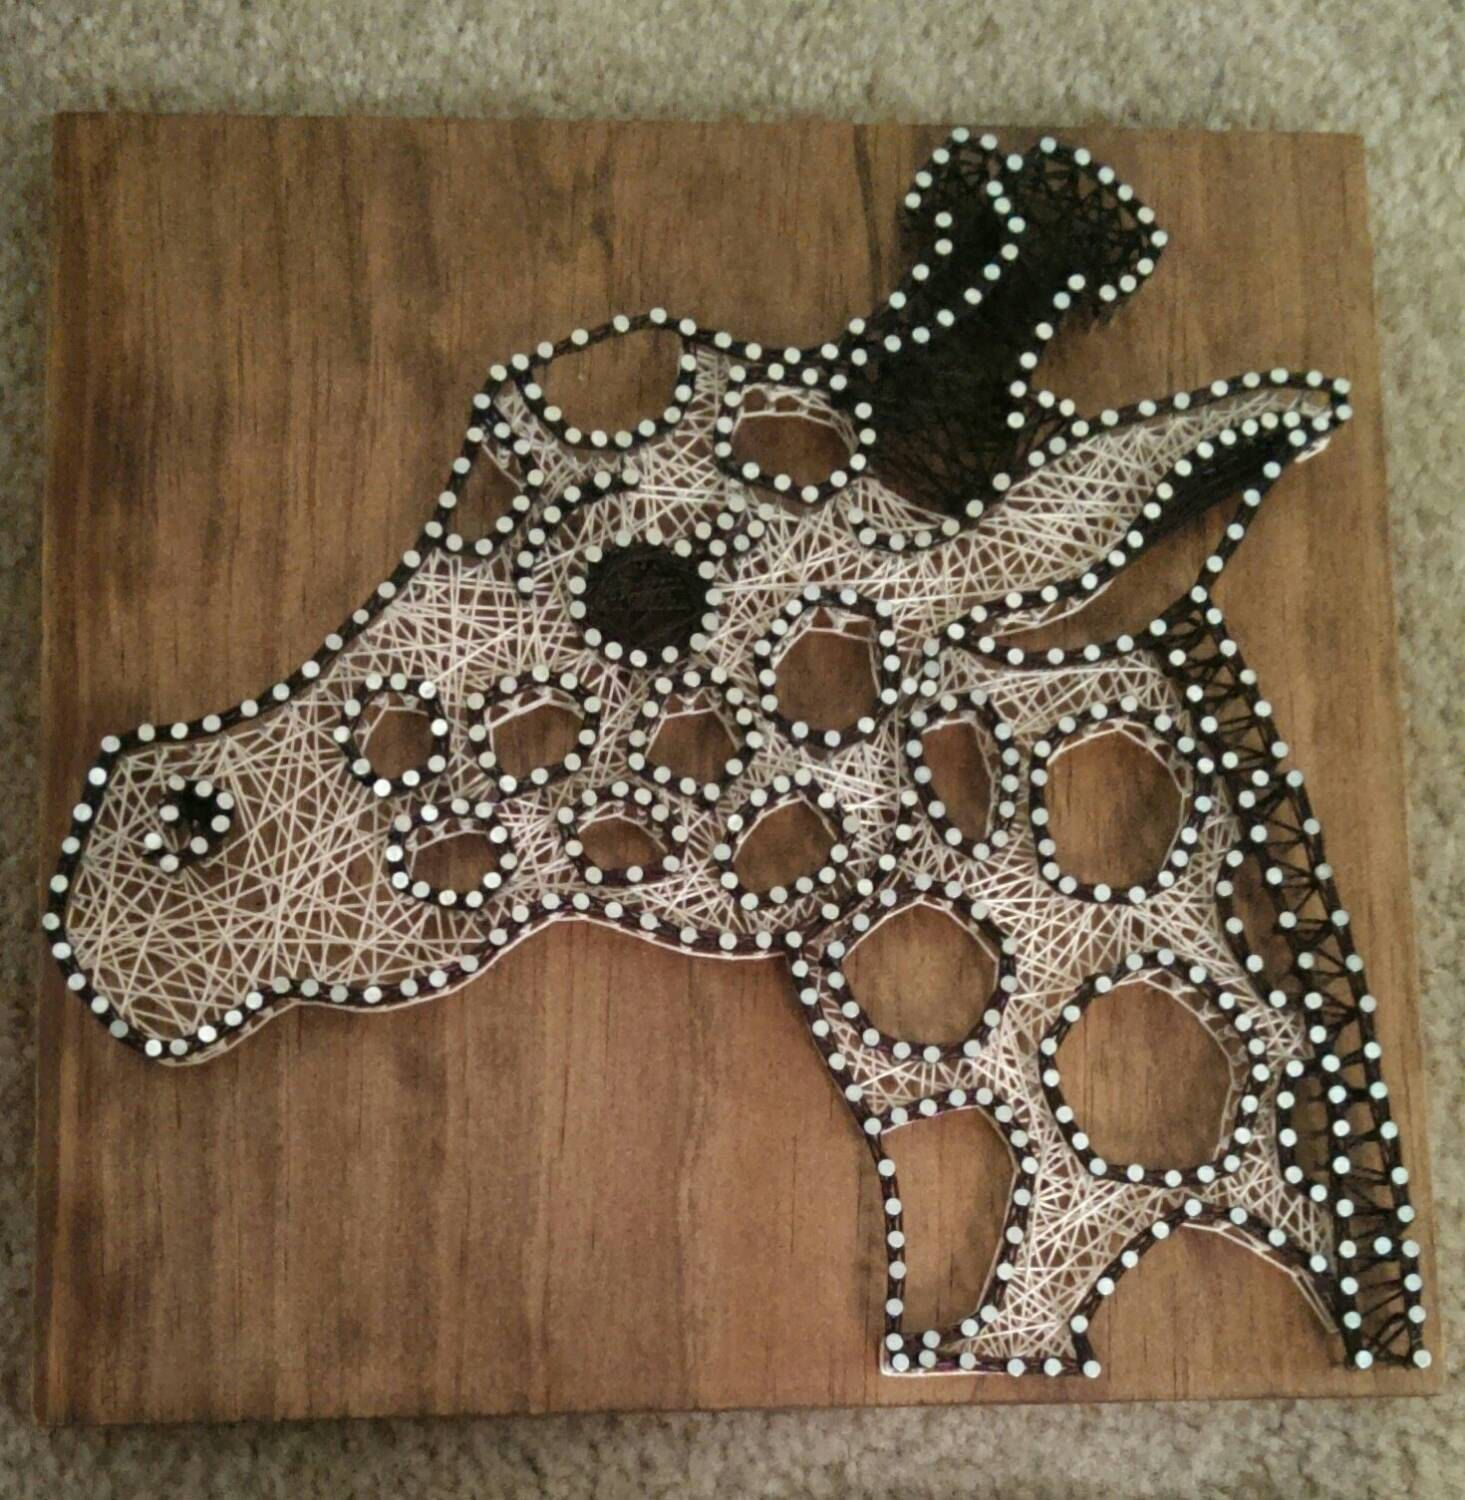 3 Panel Giraffe Nail And String Art By Brokenwingarts On Etsy Https